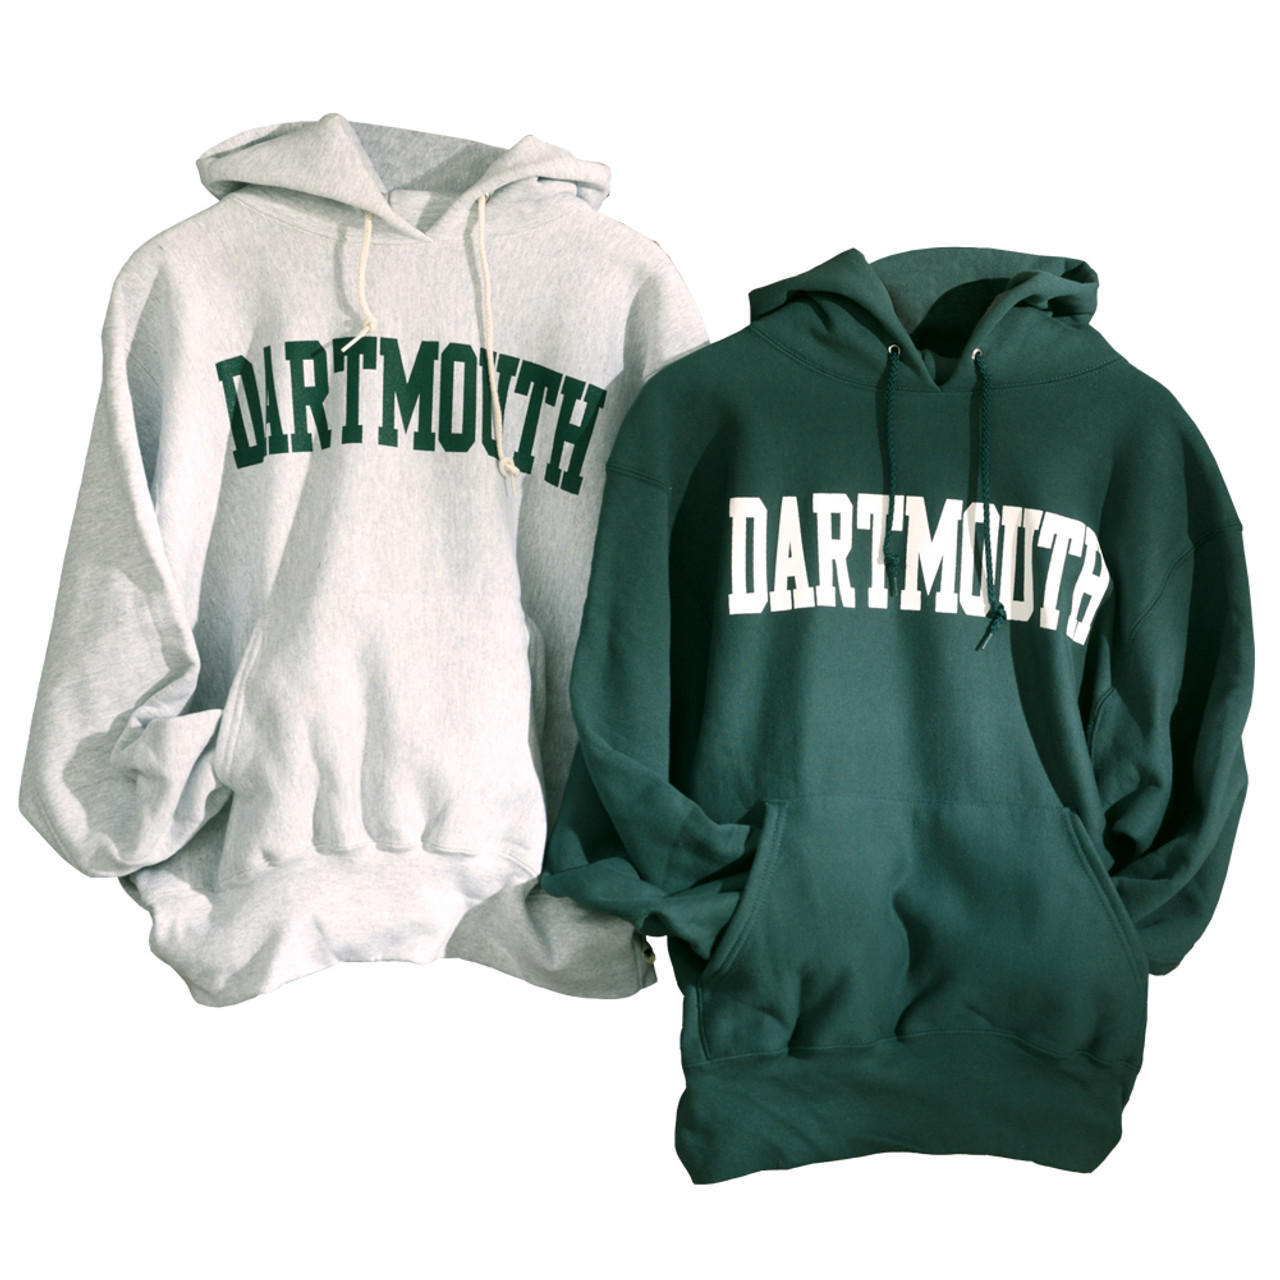 a399689eceb5 Grey or green hooded sweatshirt with  Dartmouth  across the chest in either  green or